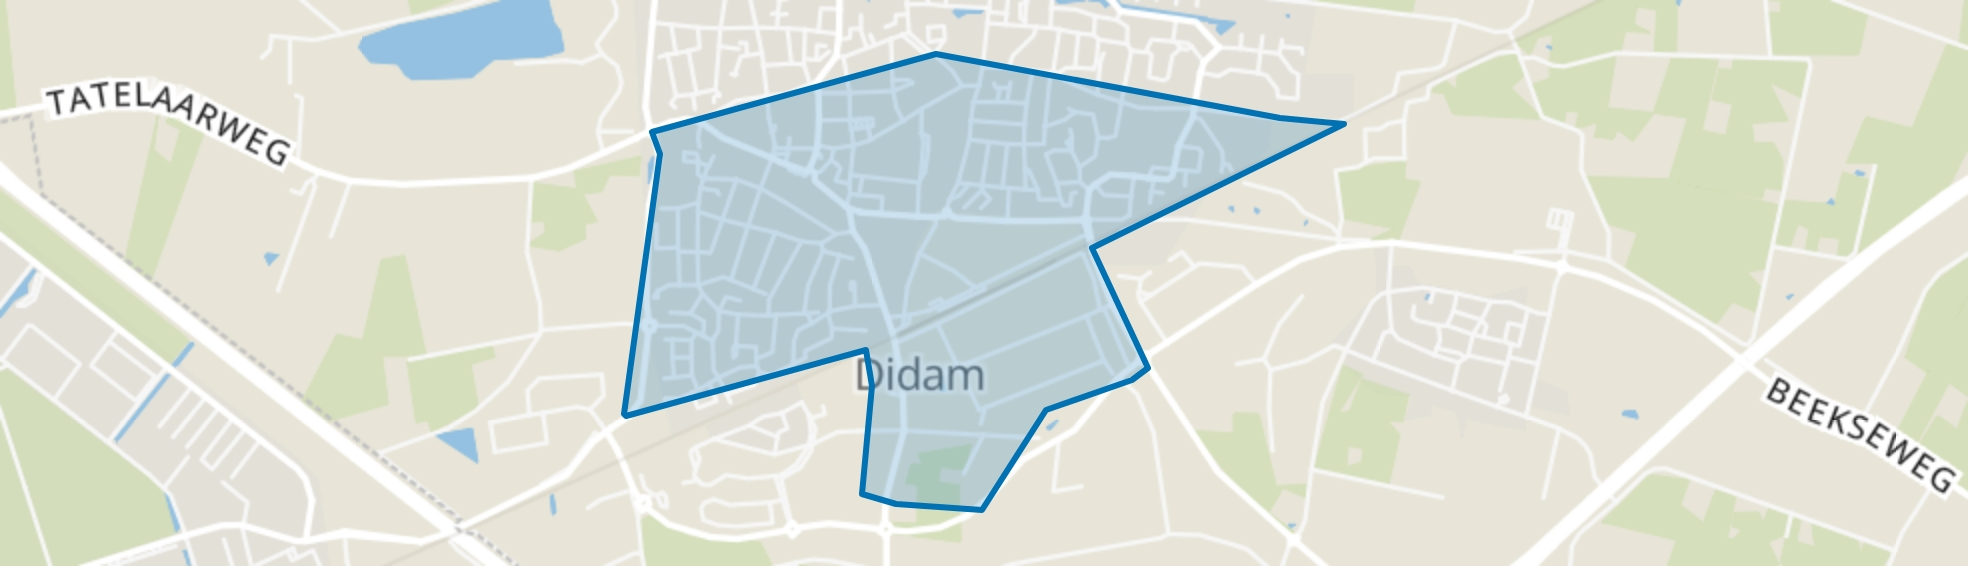 Didam-Zuid, Didam map